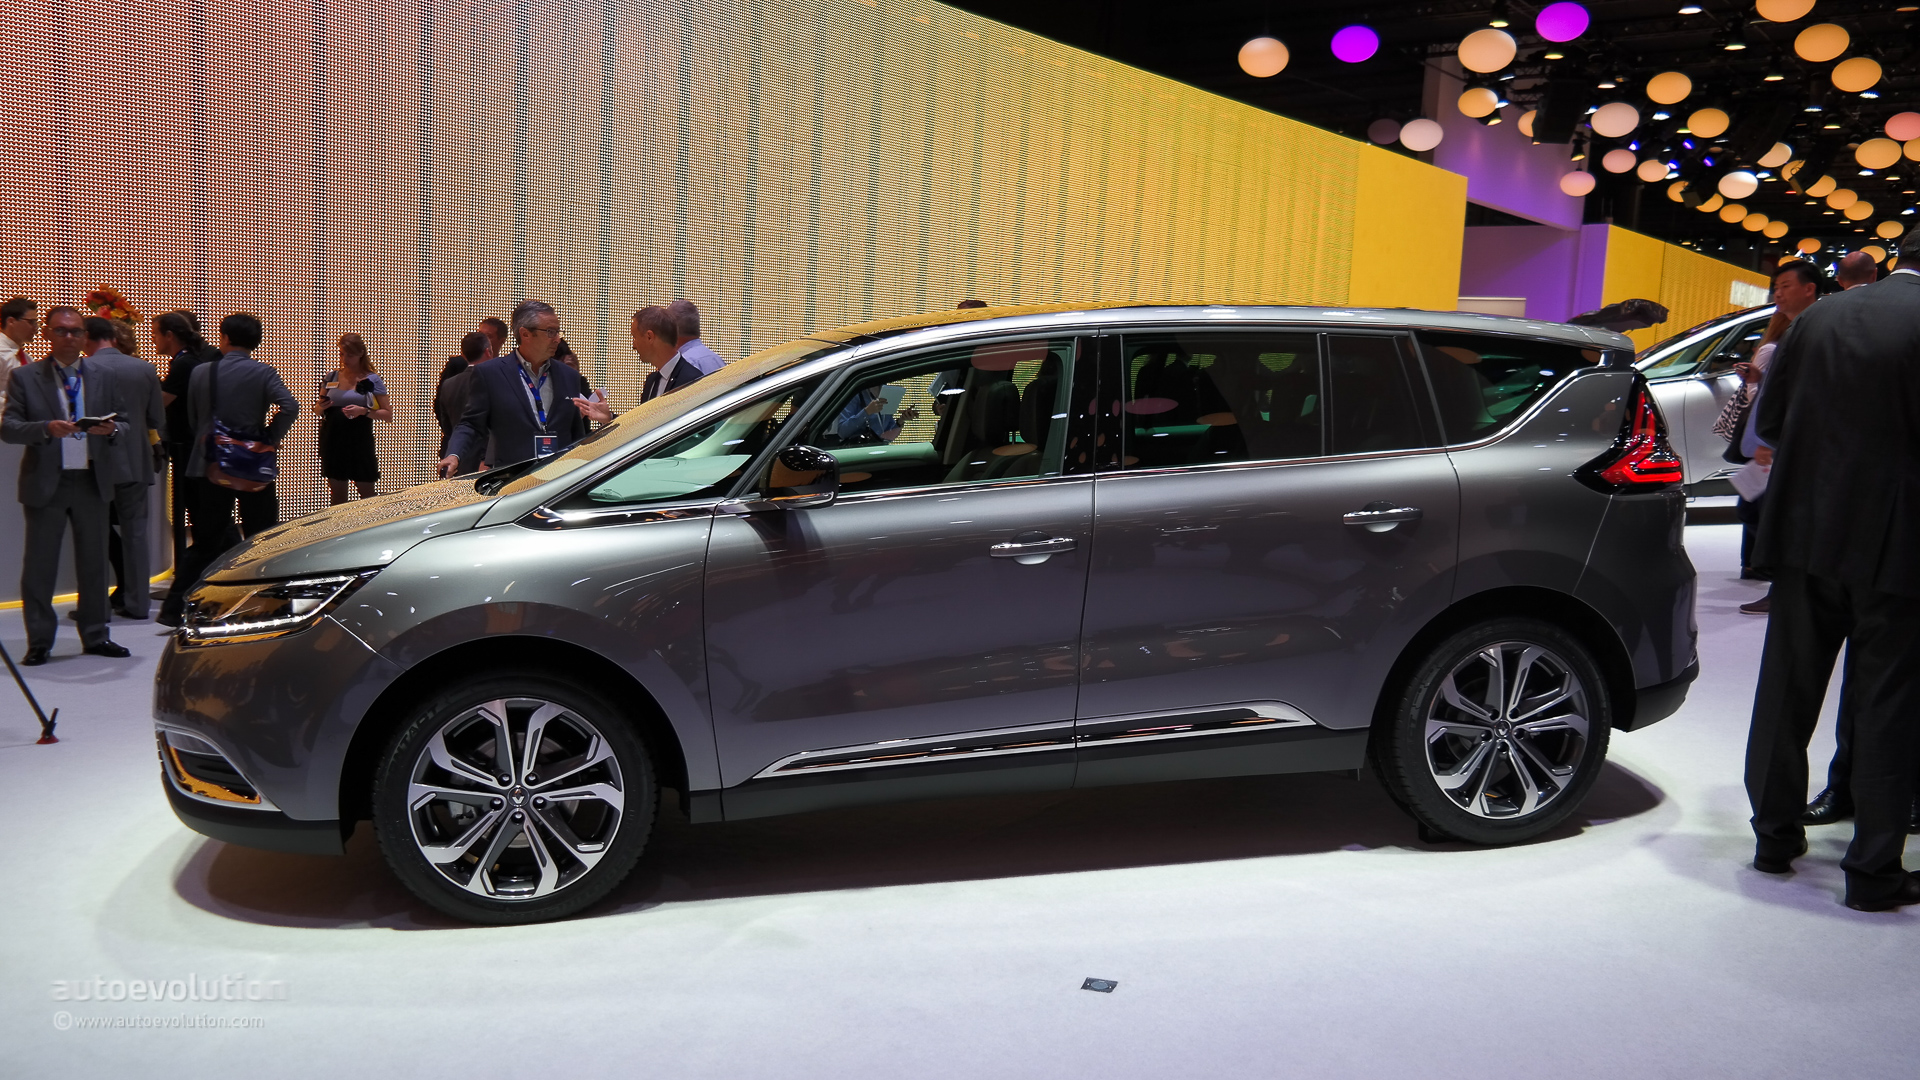 renault grand espace 3 5 v6 page 2 readers 39 cars pistonheads. Black Bedroom Furniture Sets. Home Design Ideas